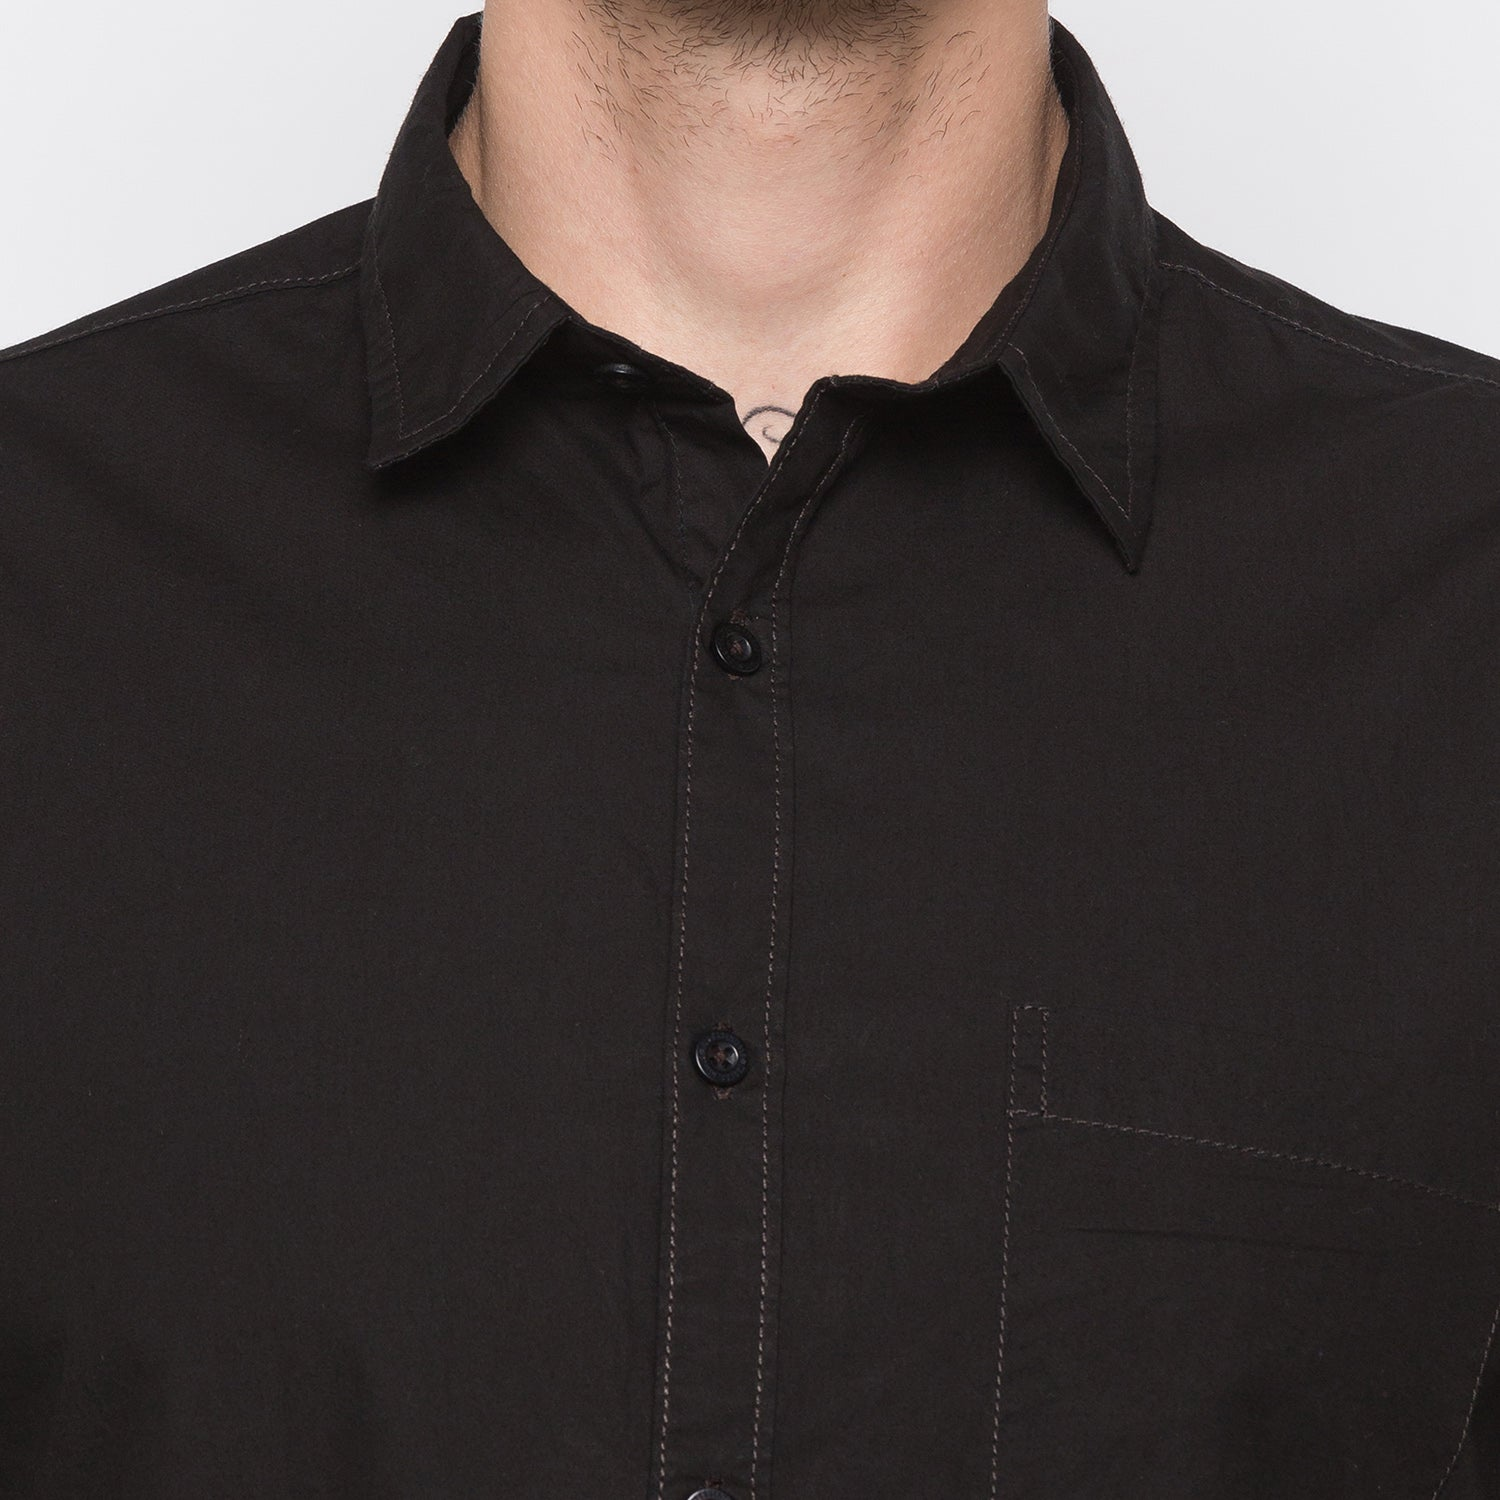 Globus Black Solid Shirt-5